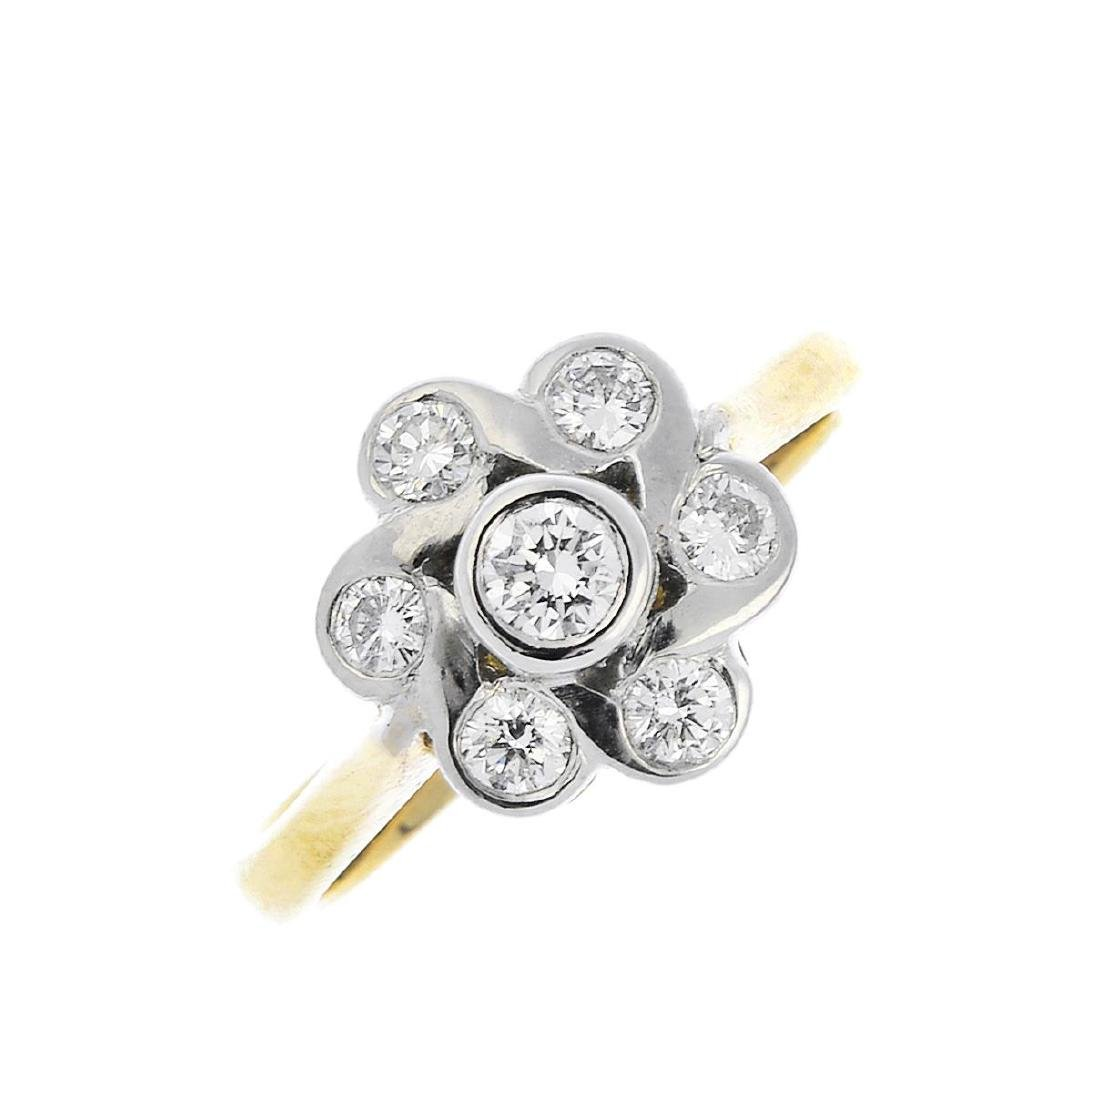 An 18ct gold diamond cluster ring. The brilliant-cut